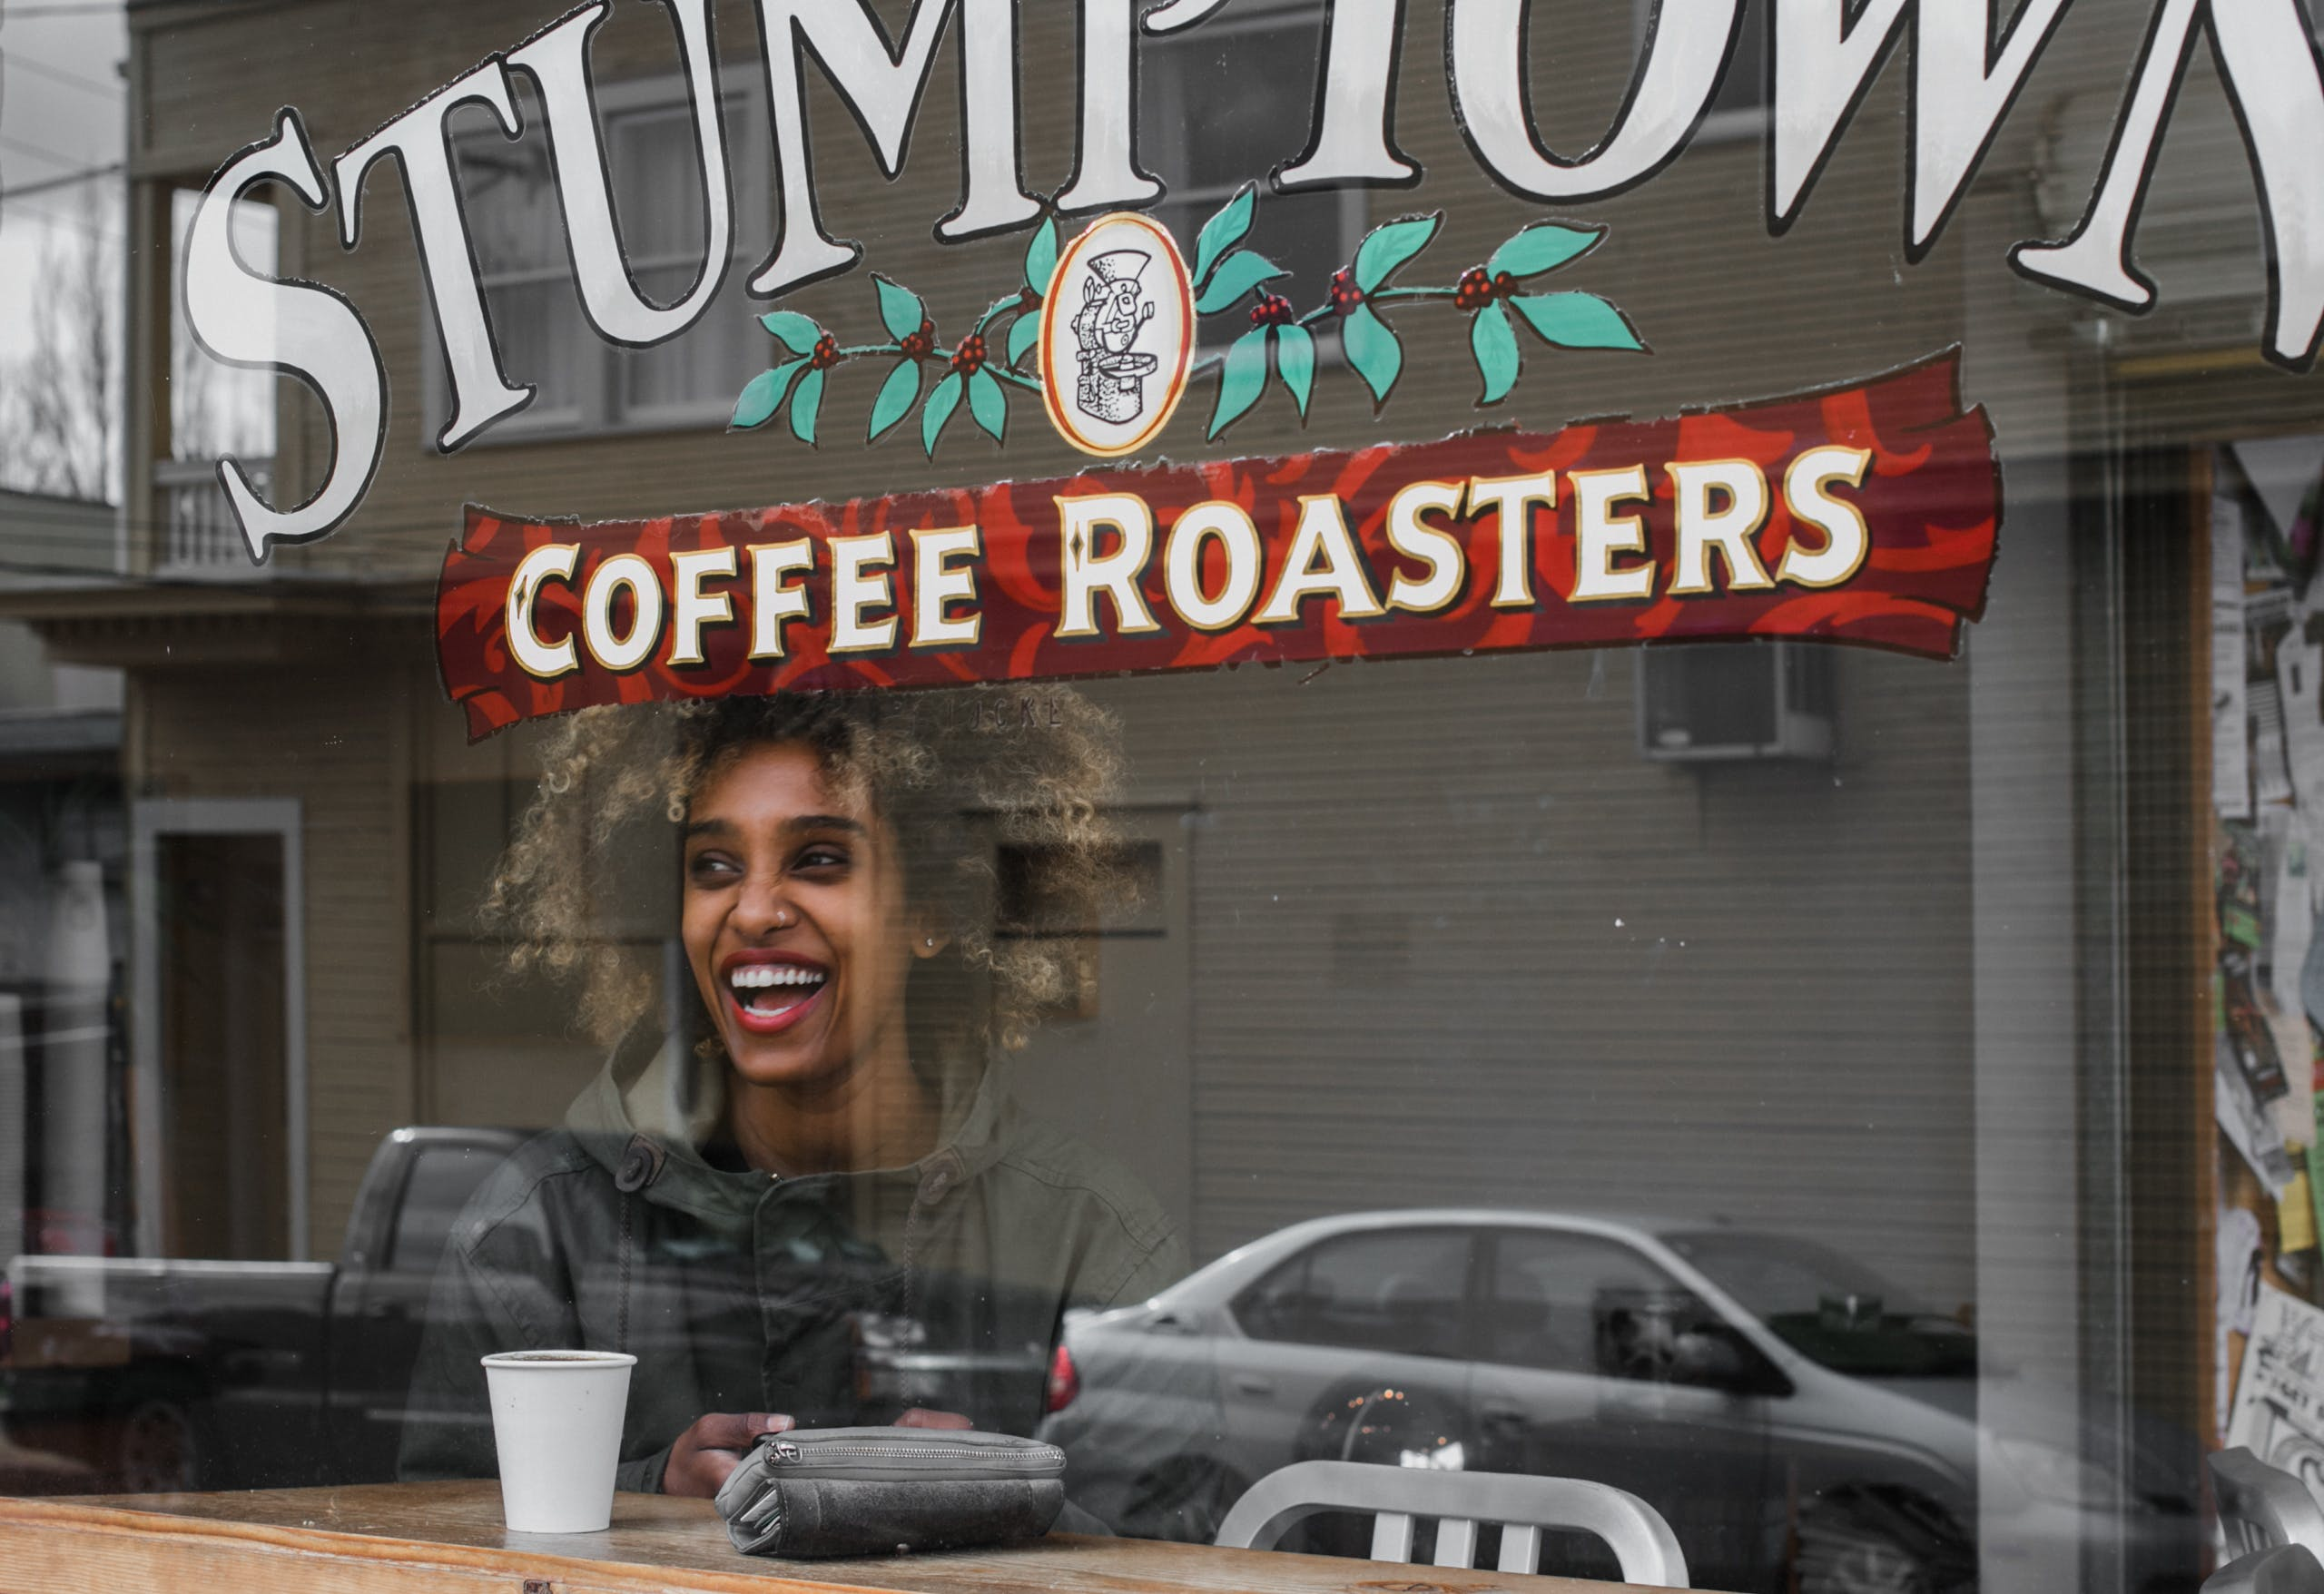 Smiling Woman Inside Coffee Roasters Cafe